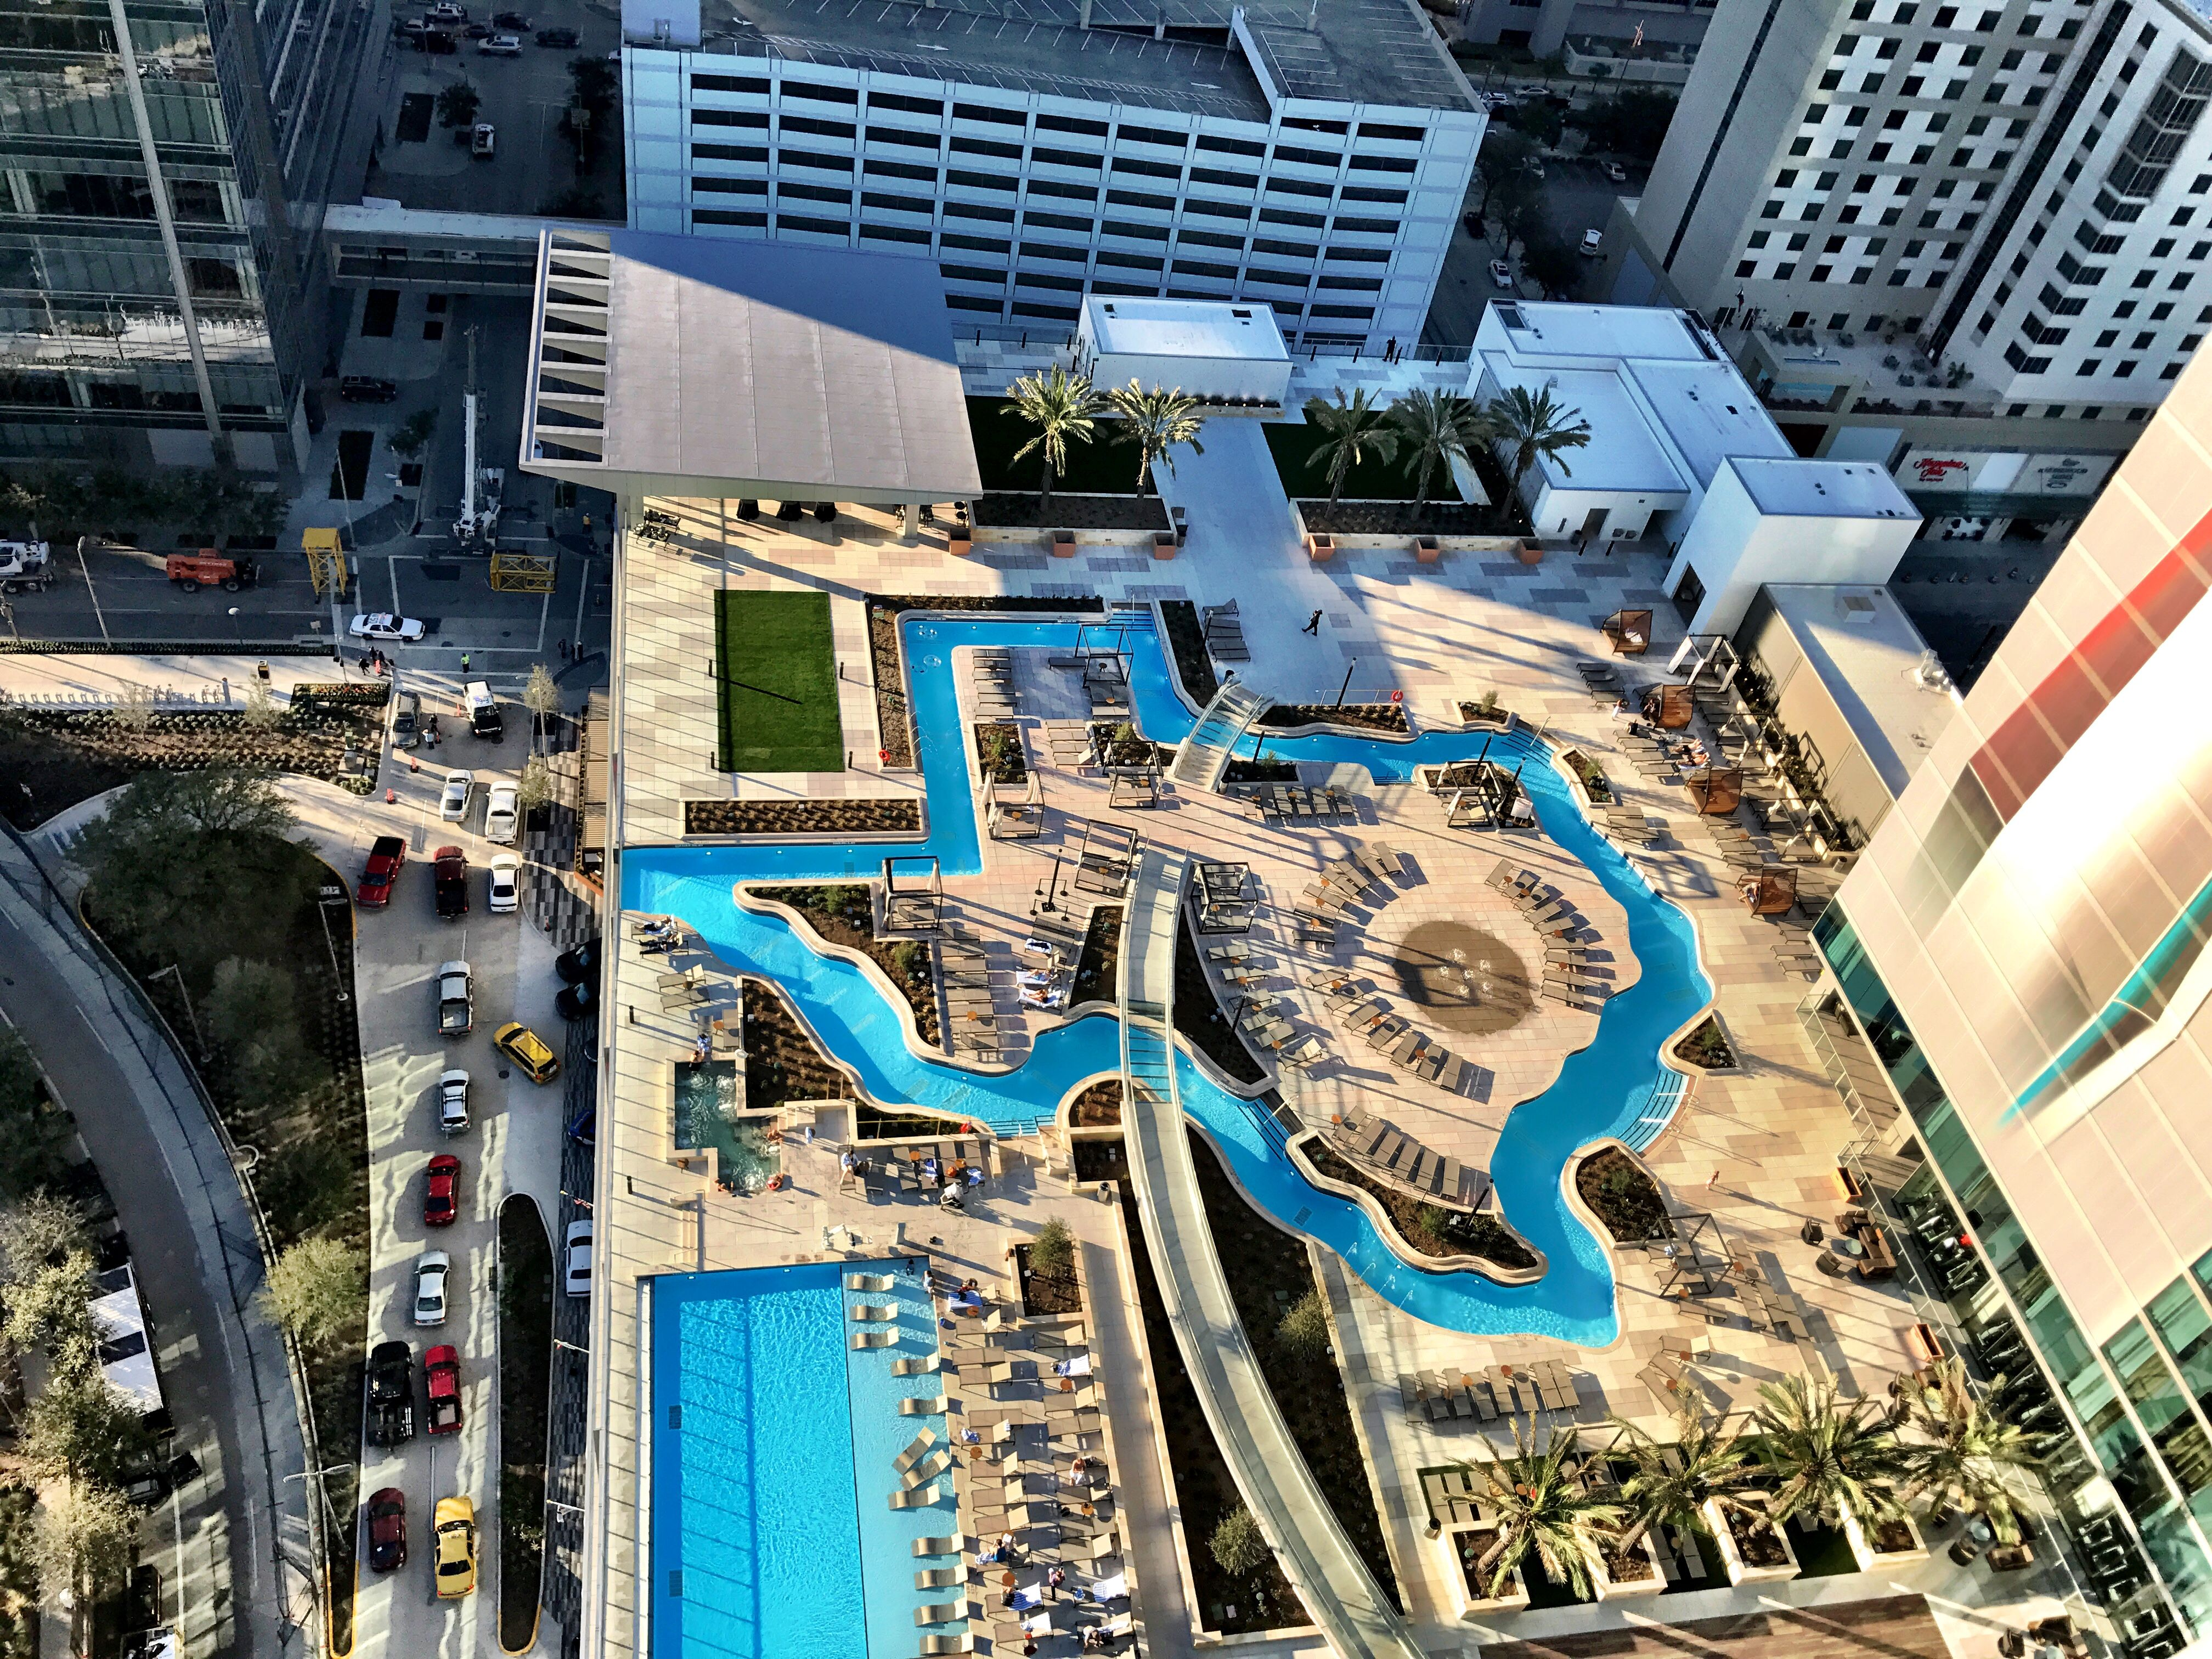 Texas Shaped Rooftop Lazy River At New Marriott Marquis In Houston Texas Shaped Texas Travel Road Trip Fun